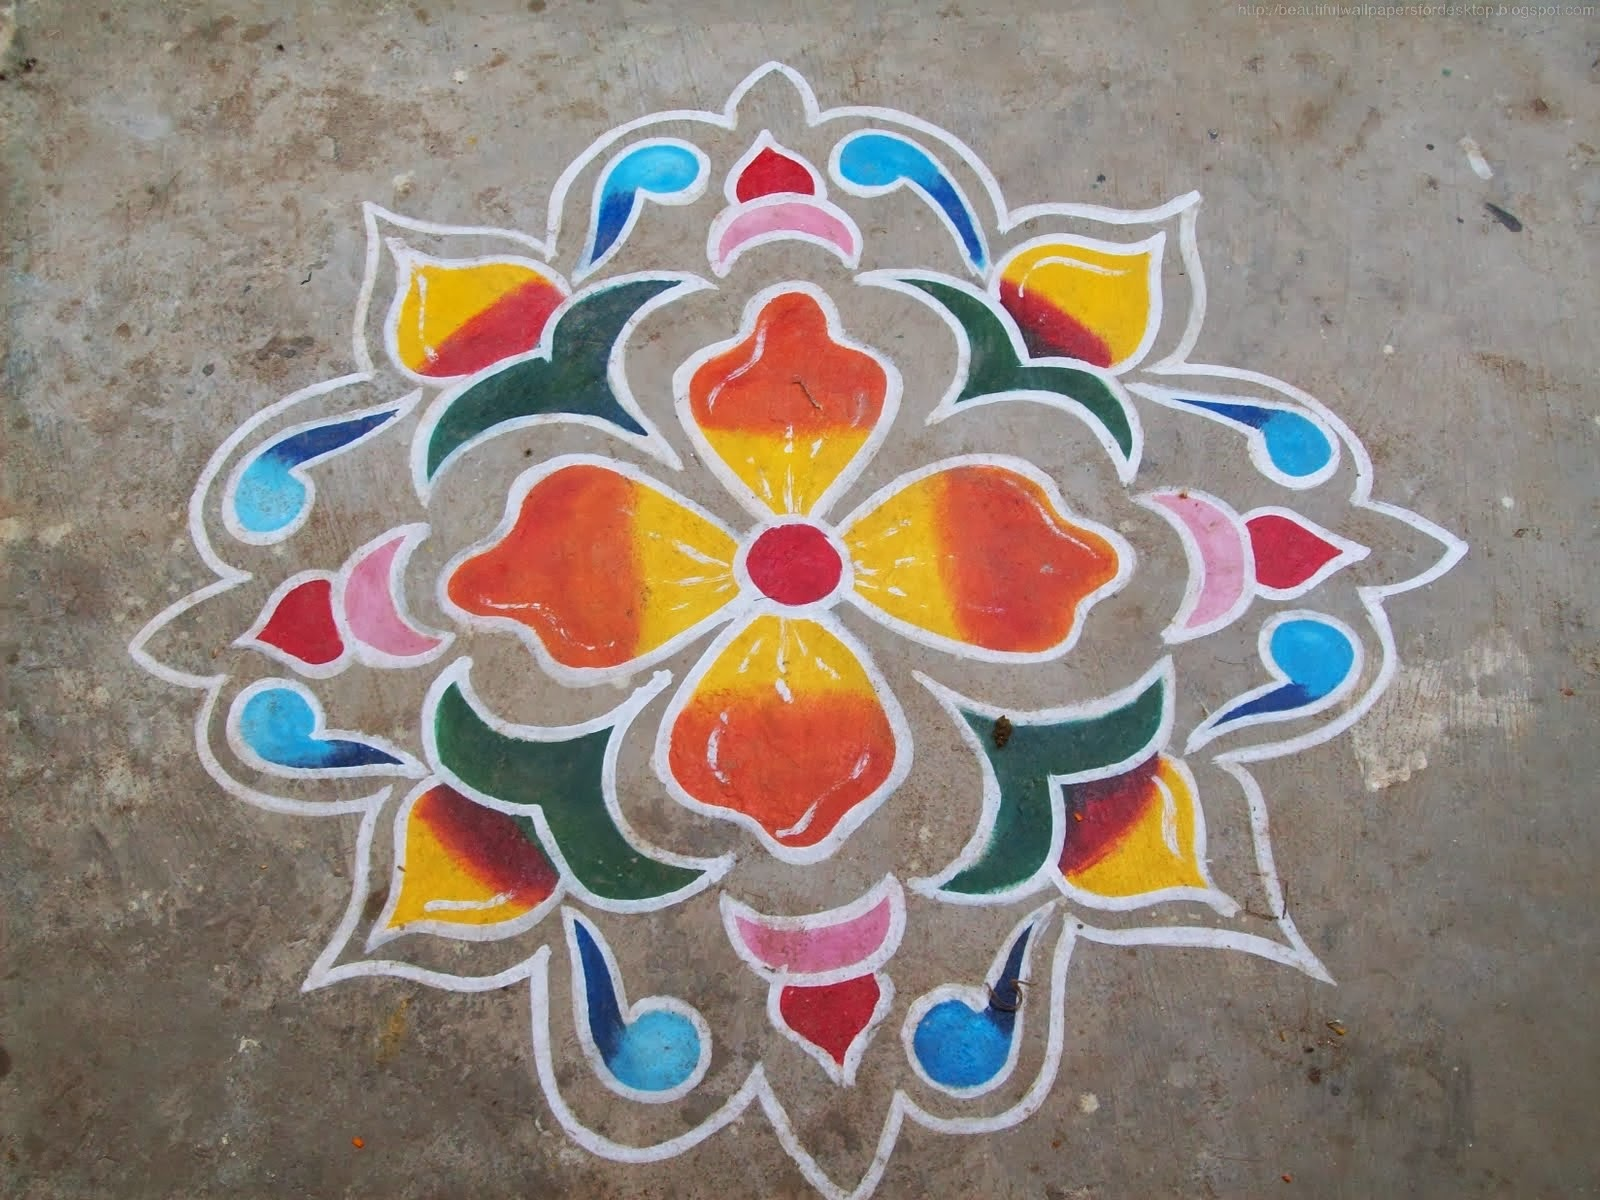 rangoli designs wallpaper stars - photo #6